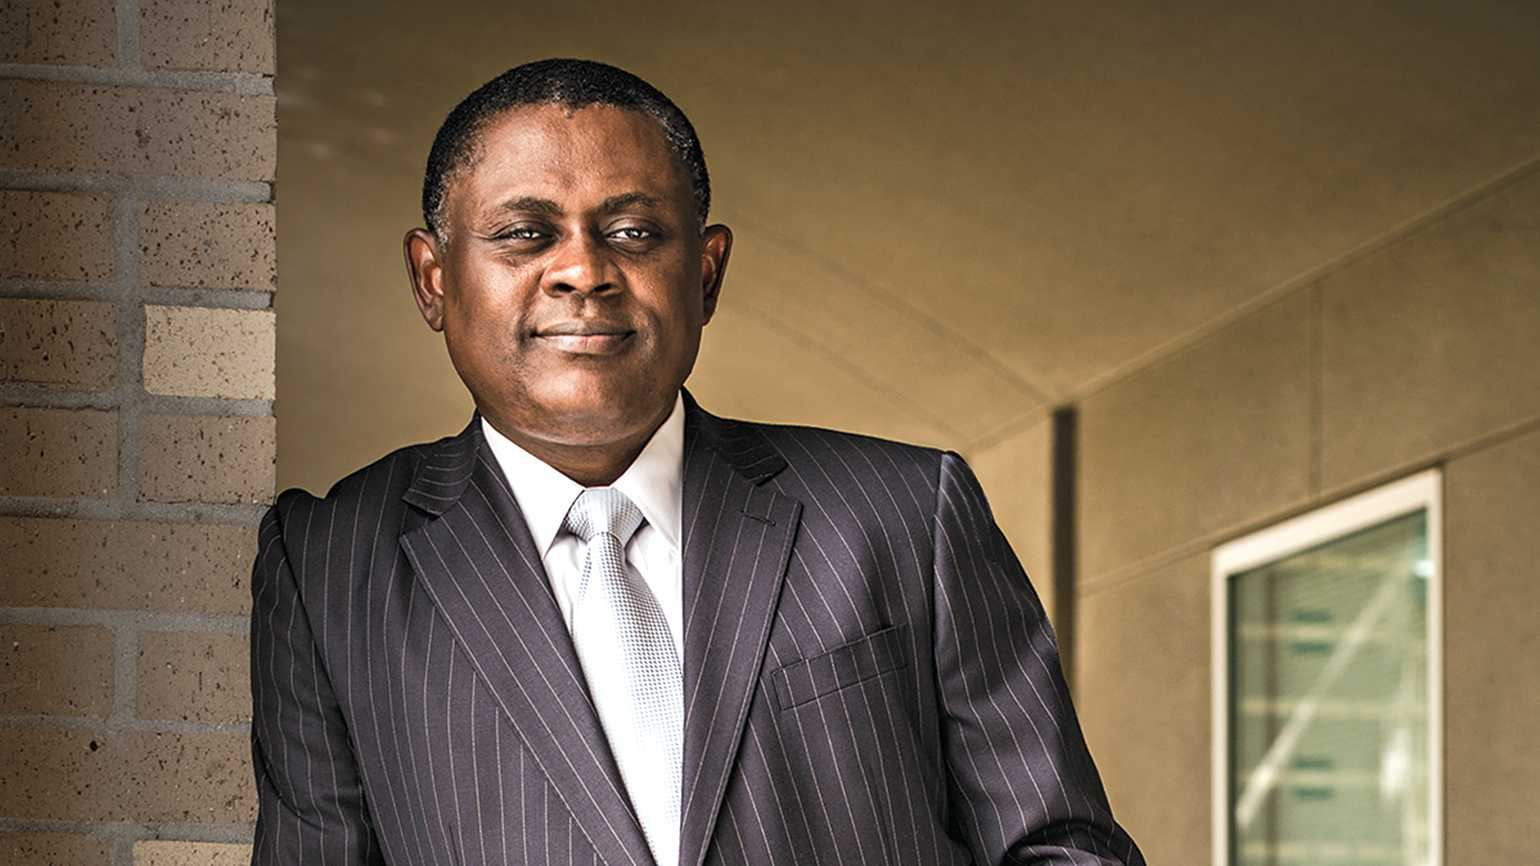 Dr. Omalu is now chief medical examiner for San Joaquin County, California, as well as a clinical professor at UC Davis.